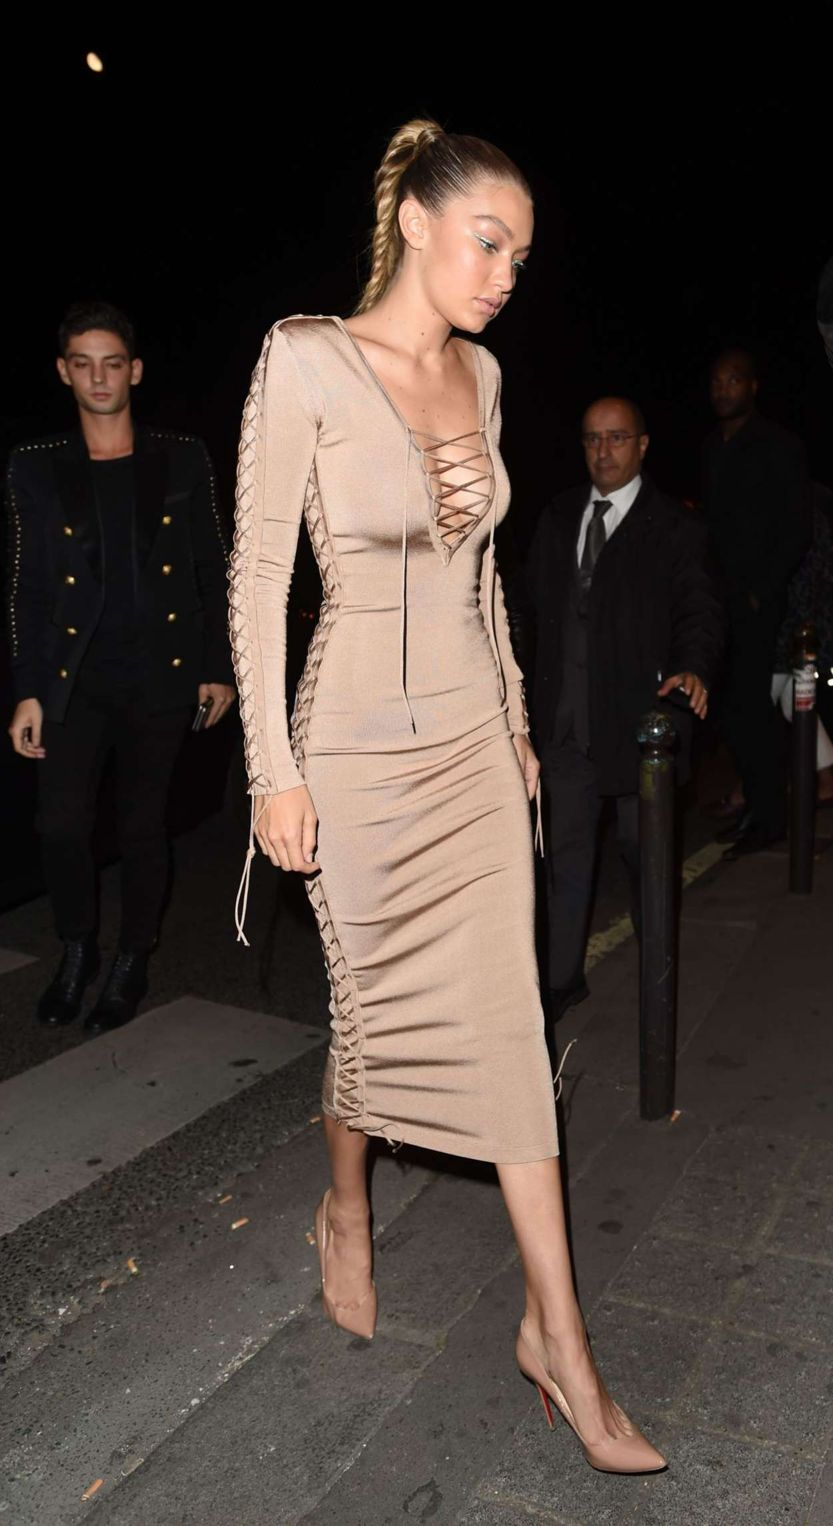 Gigi Hadid - Balmain Show After Party in Paris